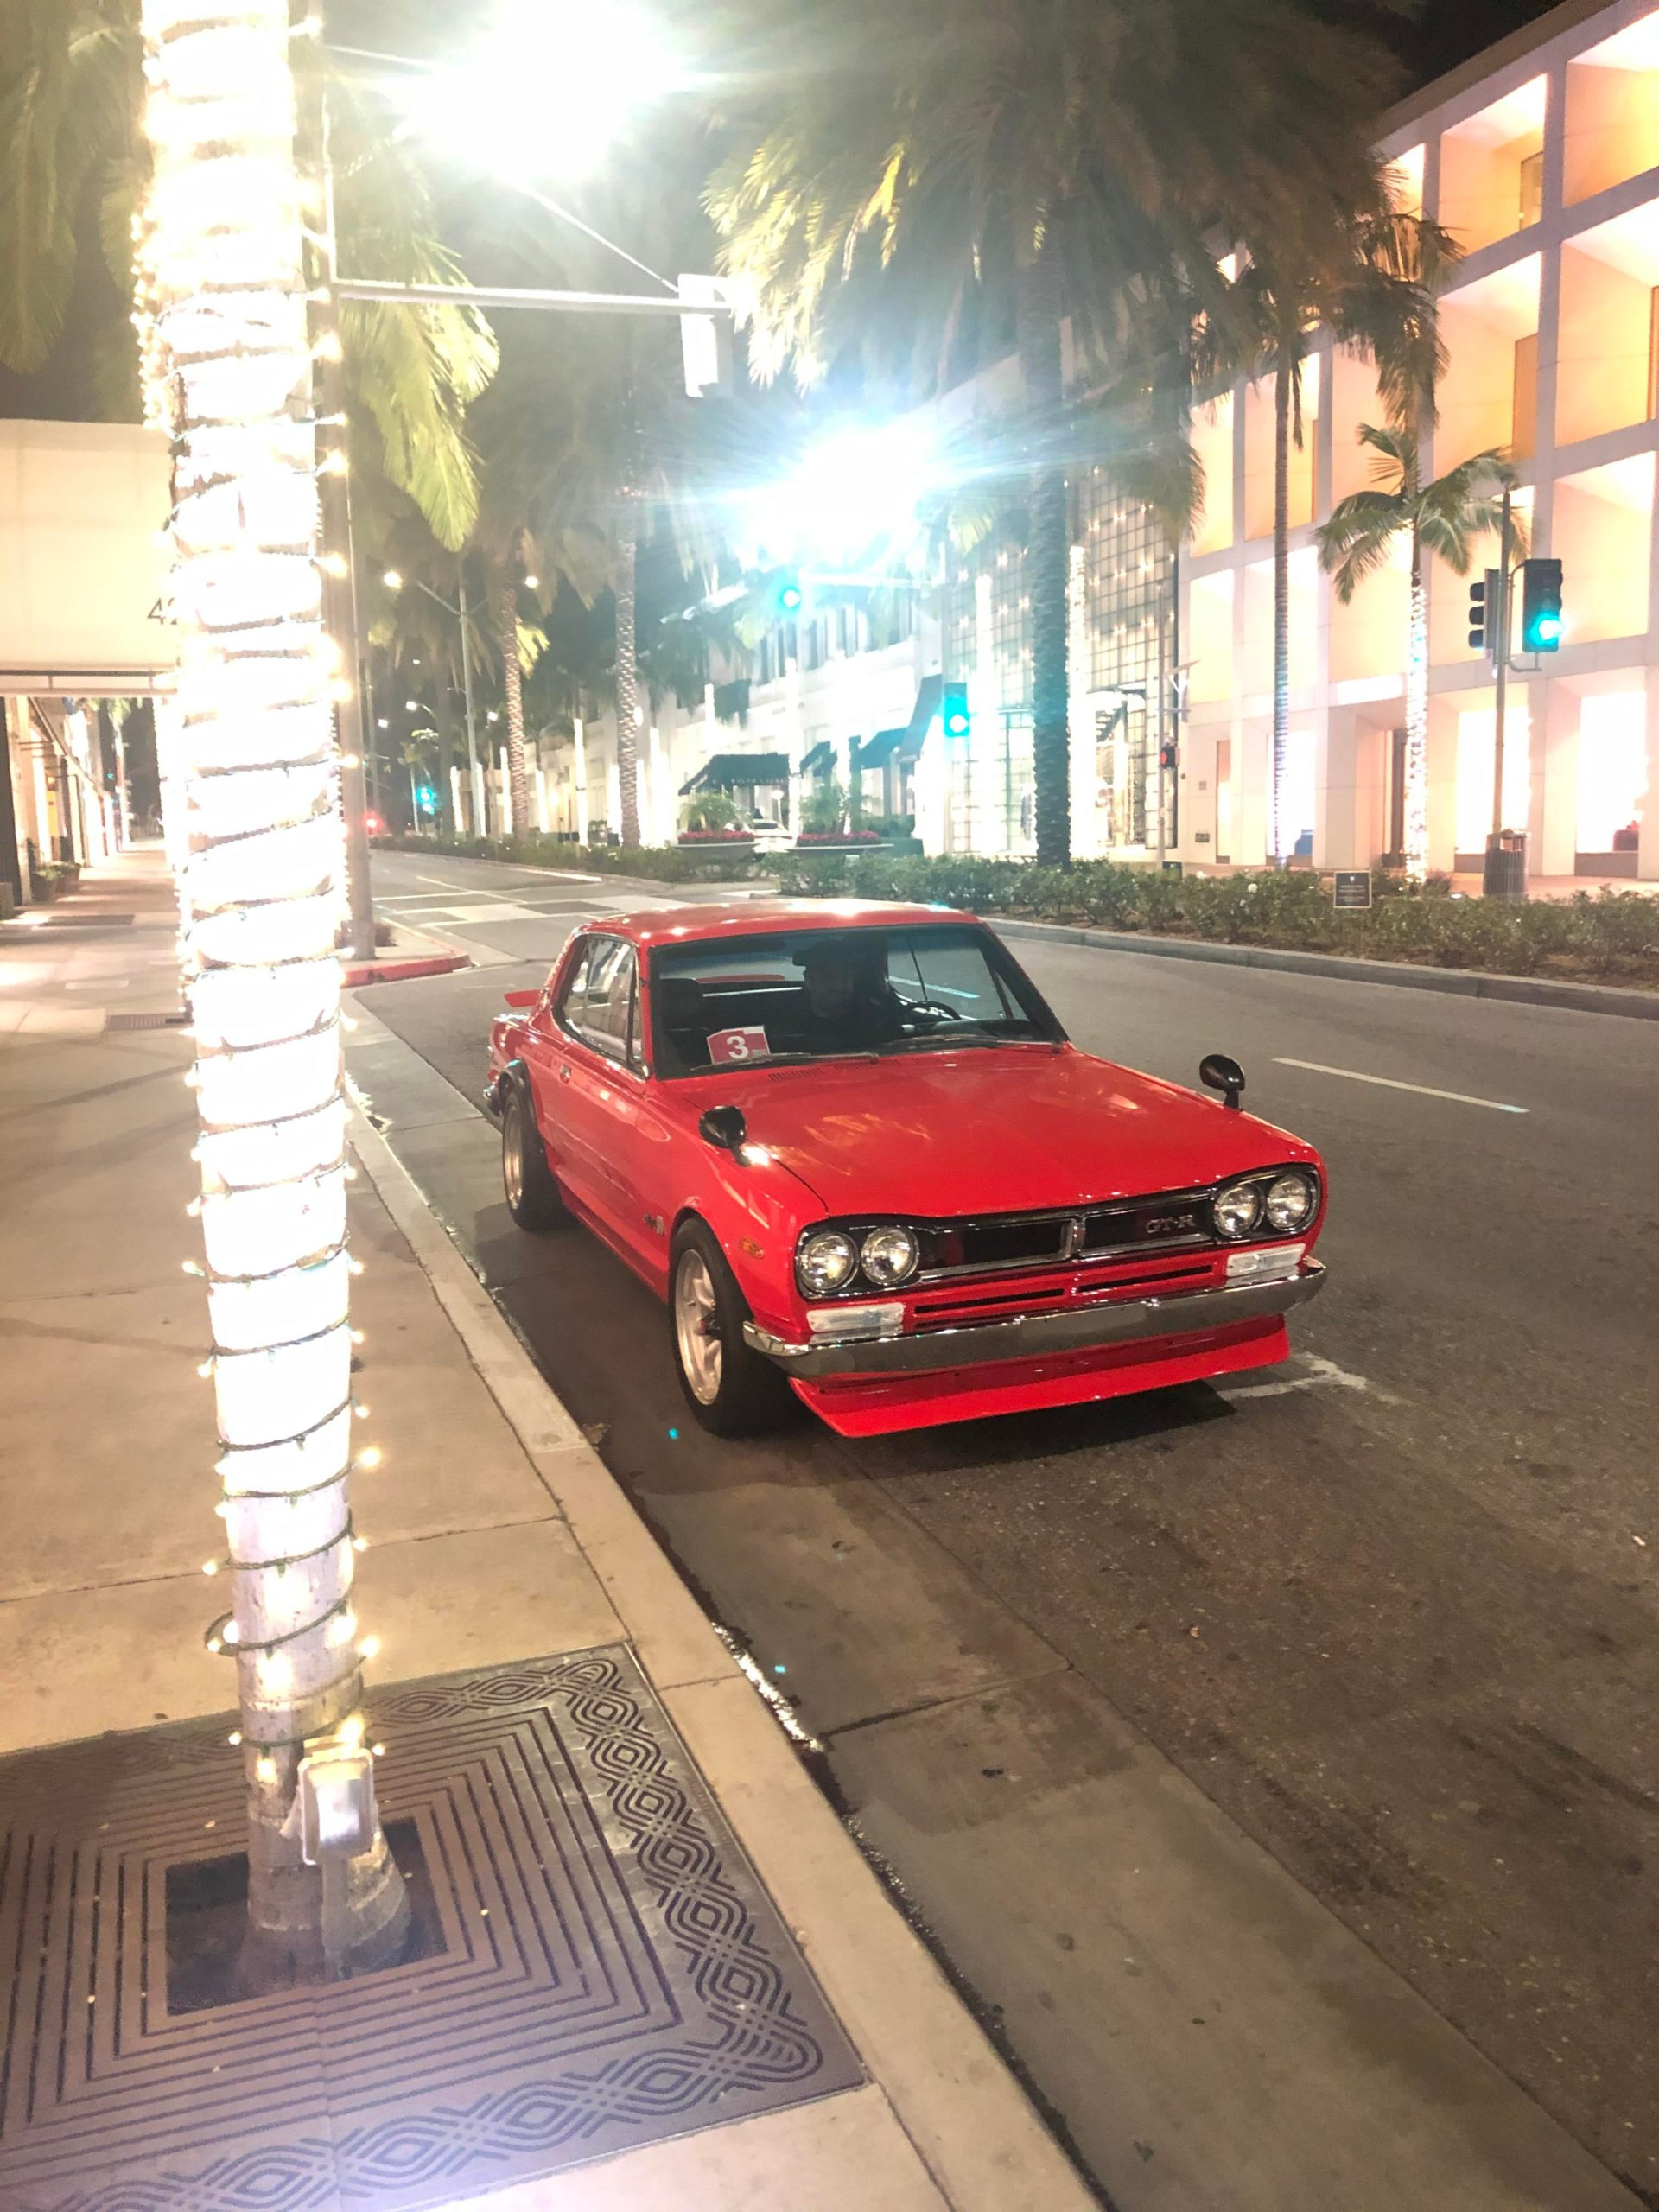 Just saw this Skyline GTR in Beverly Hills. Owner is from Qatar and converted it to LHD so he can legally drive it in Qatar